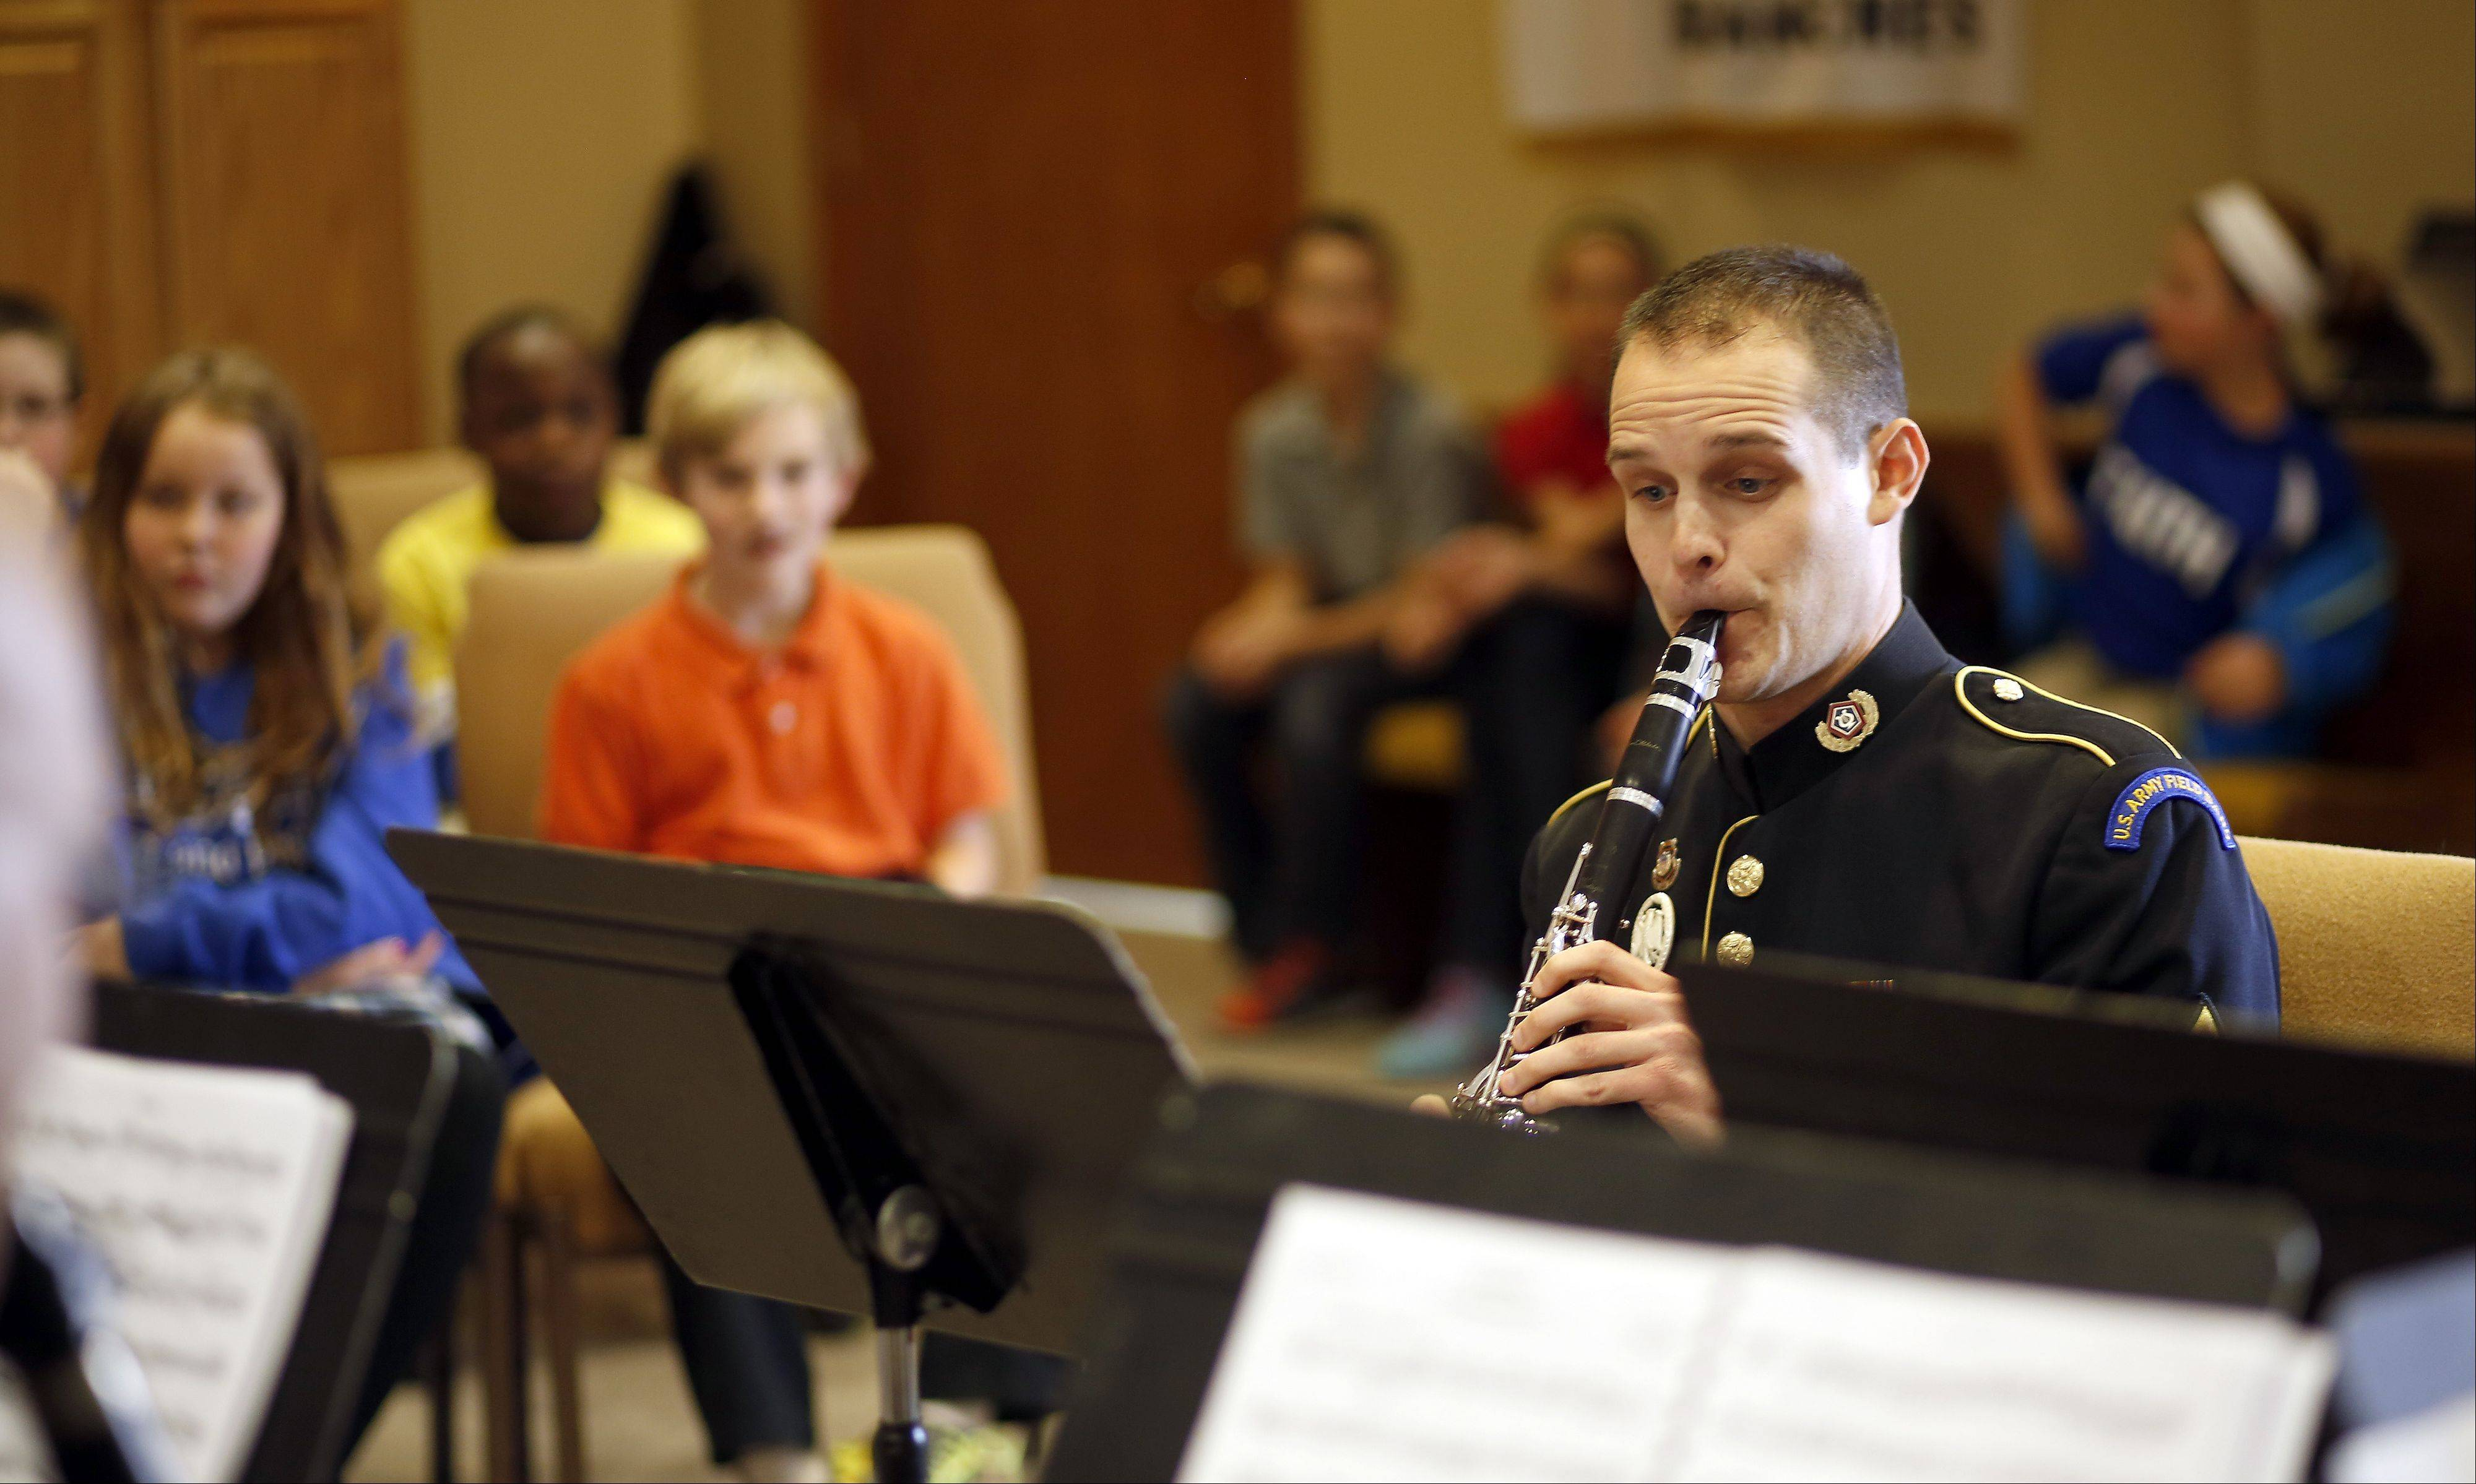 Faith Christian Academy alumnus Joel Klenke performs Thursday for third- and fourth-grade students in Geneva. Klenke and his brother, Jeremy, and members of the U.S. Army Field Band conducted a mini concert for students.